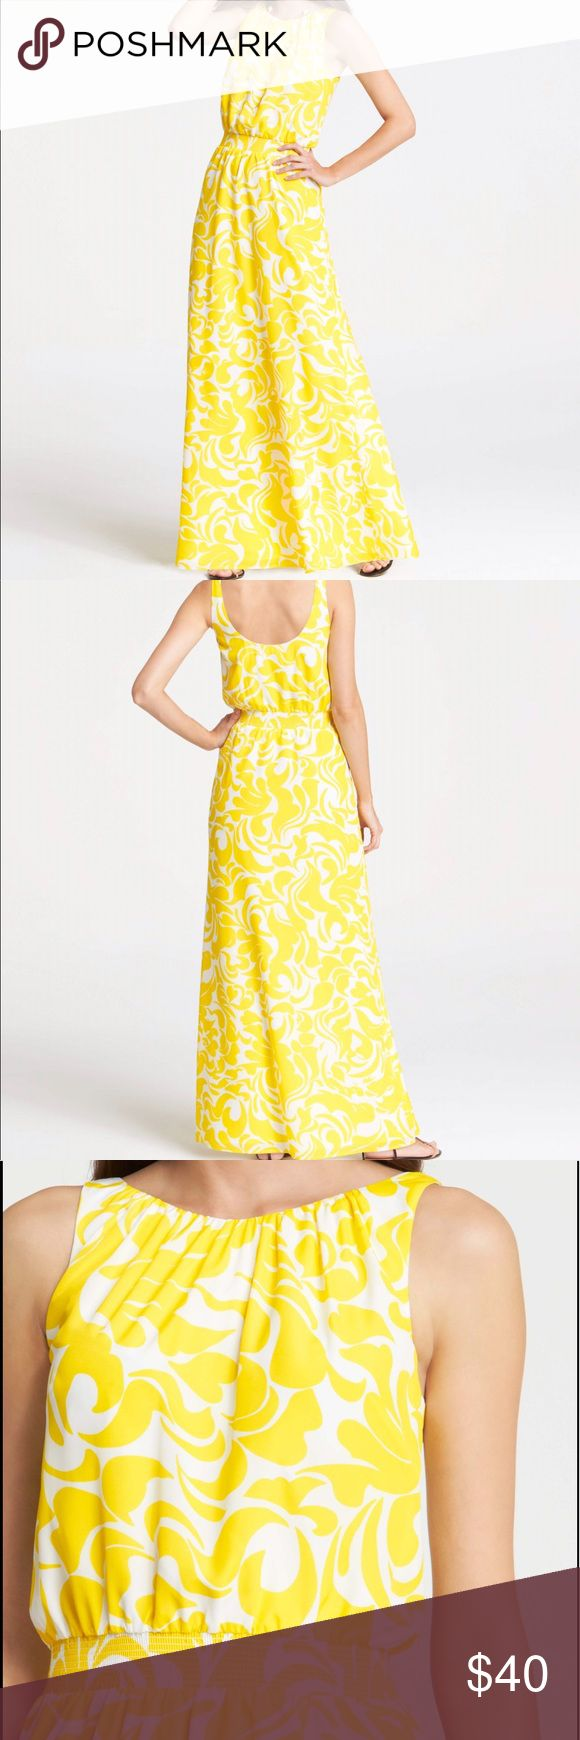 Selling this Ann Taylor Yellow Maxi Dress on Poshmark! My username is: emalmberg. #shopmycloset #poshmark #fashion #shopping #style #forsale #Ann Taylor #Dresses & Skirts